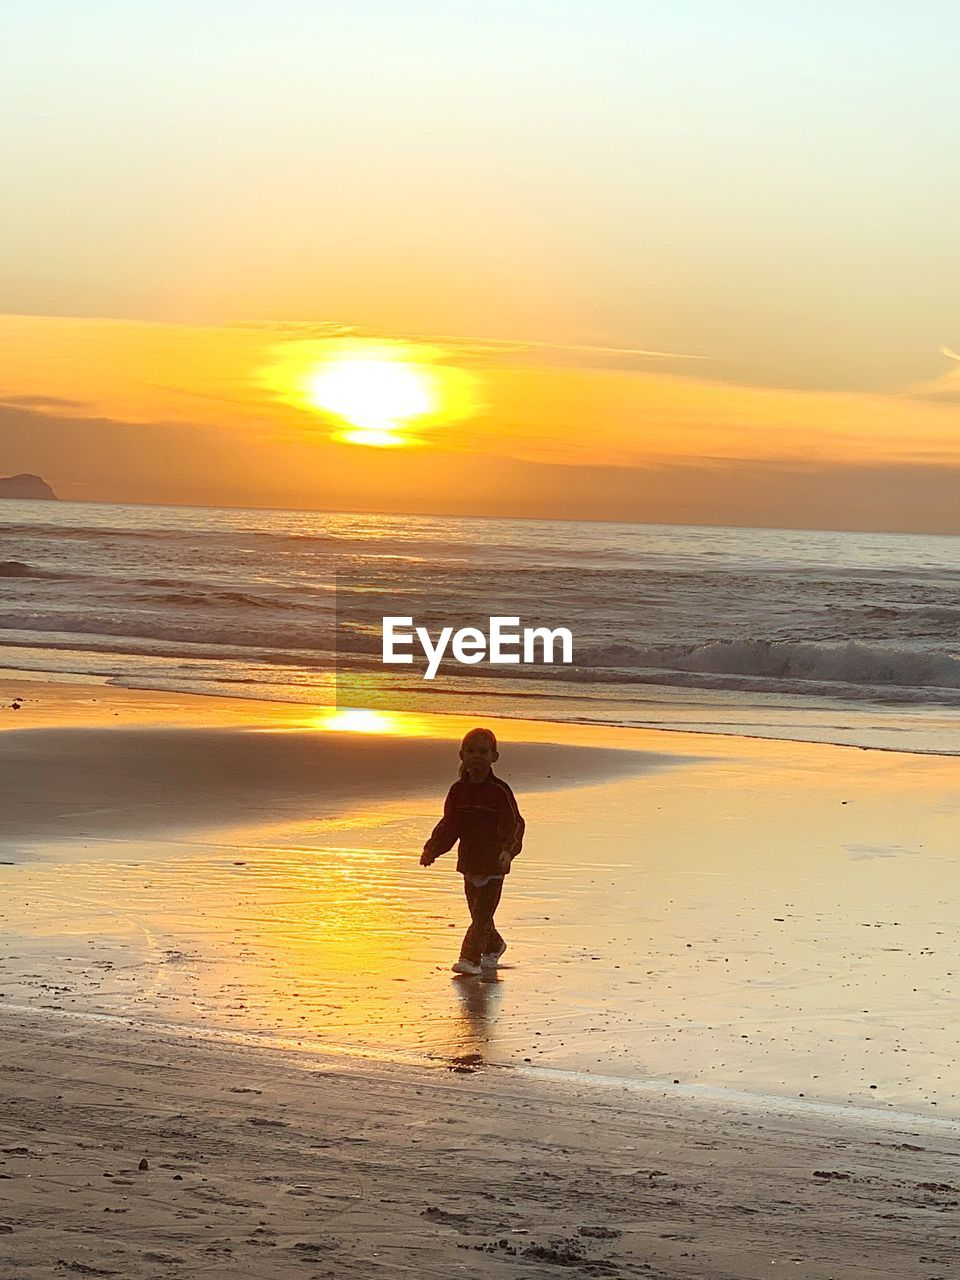 sunset, beach, water, sea, sky, land, horizon over water, horizon, beauty in nature, real people, orange color, scenics - nature, leisure activity, lifestyles, one person, sand, standing, nature, idyllic